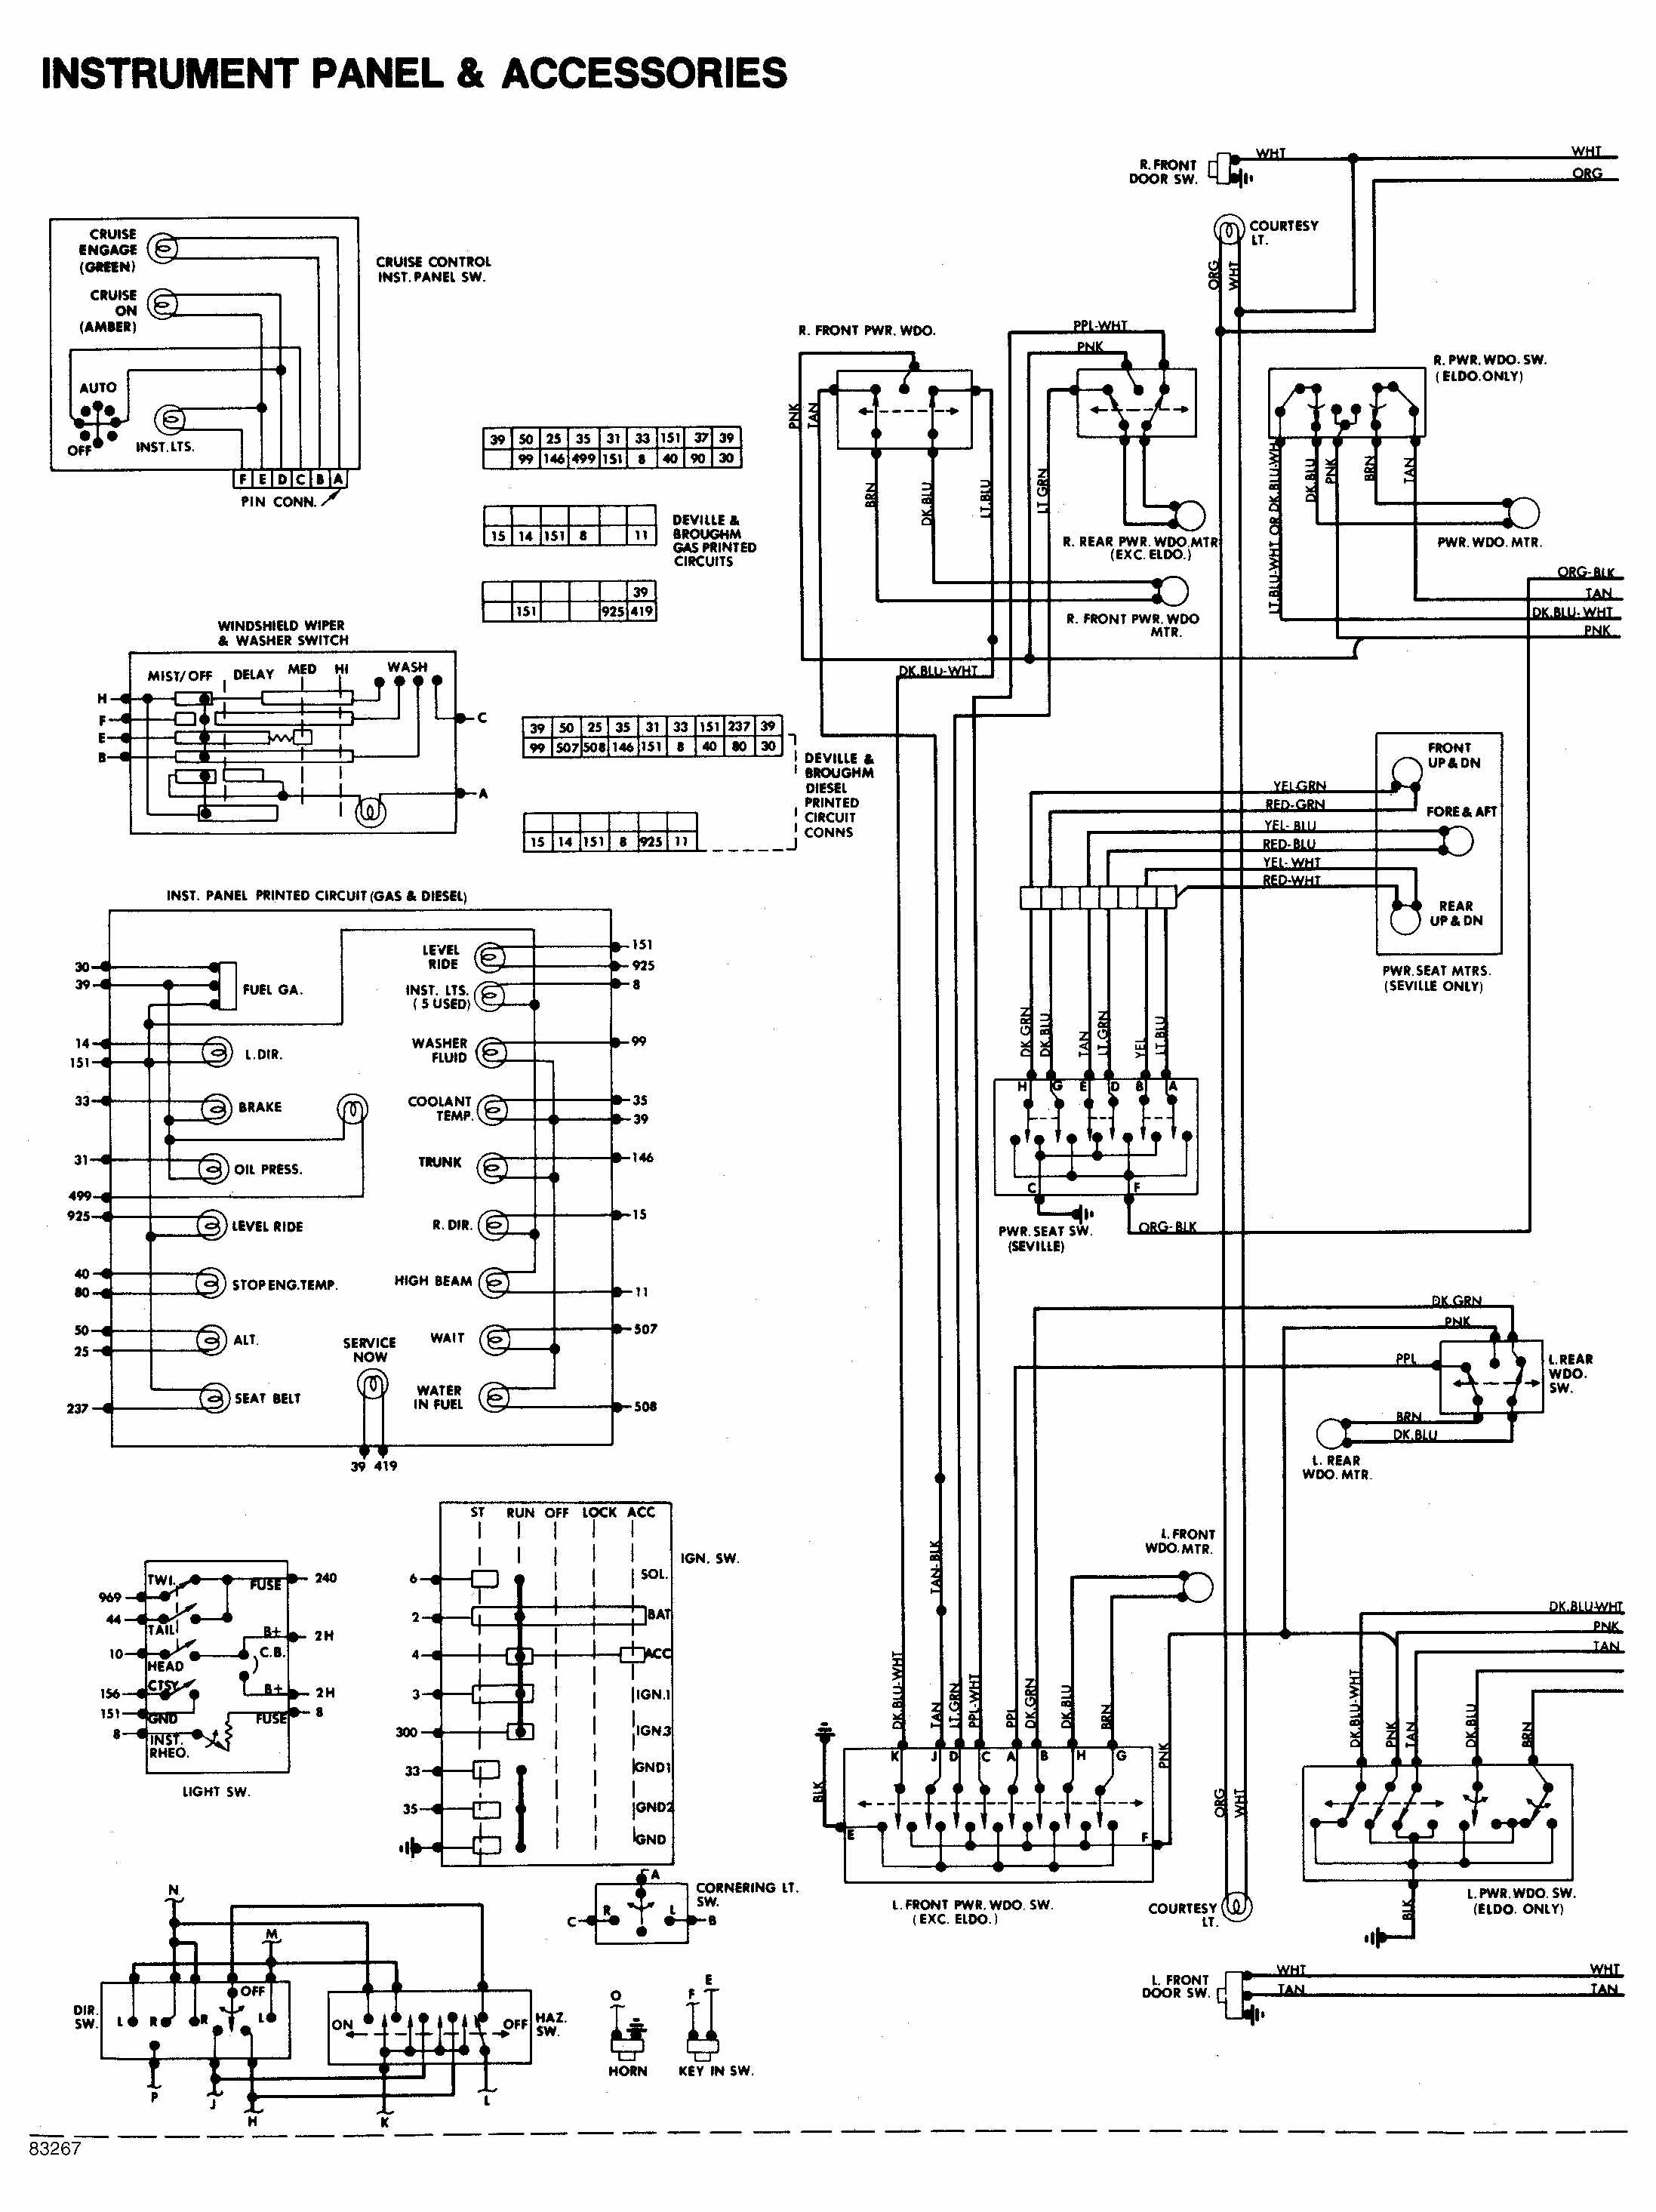 1994 Cadillac Deville Starter Wiring Diagram Good 1st 2007 Ford Five Hundred Fuel Pump Wire For 1995 Sedan Third Rh 7 6 16 Jacobwinterstein Com 1992 1998